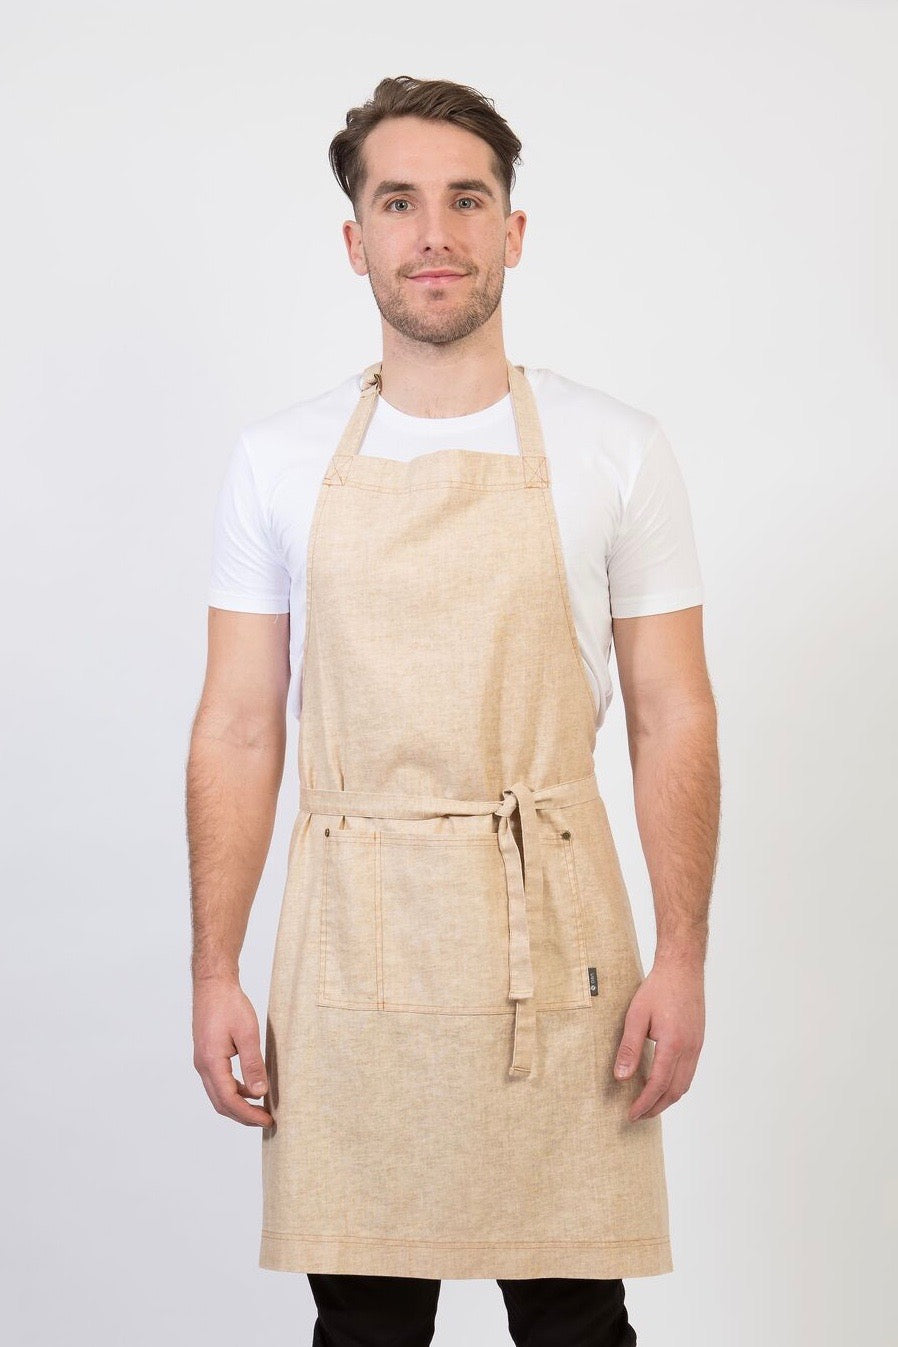 CLEMENTINE BIB Apron with metal trims - Natural Linen